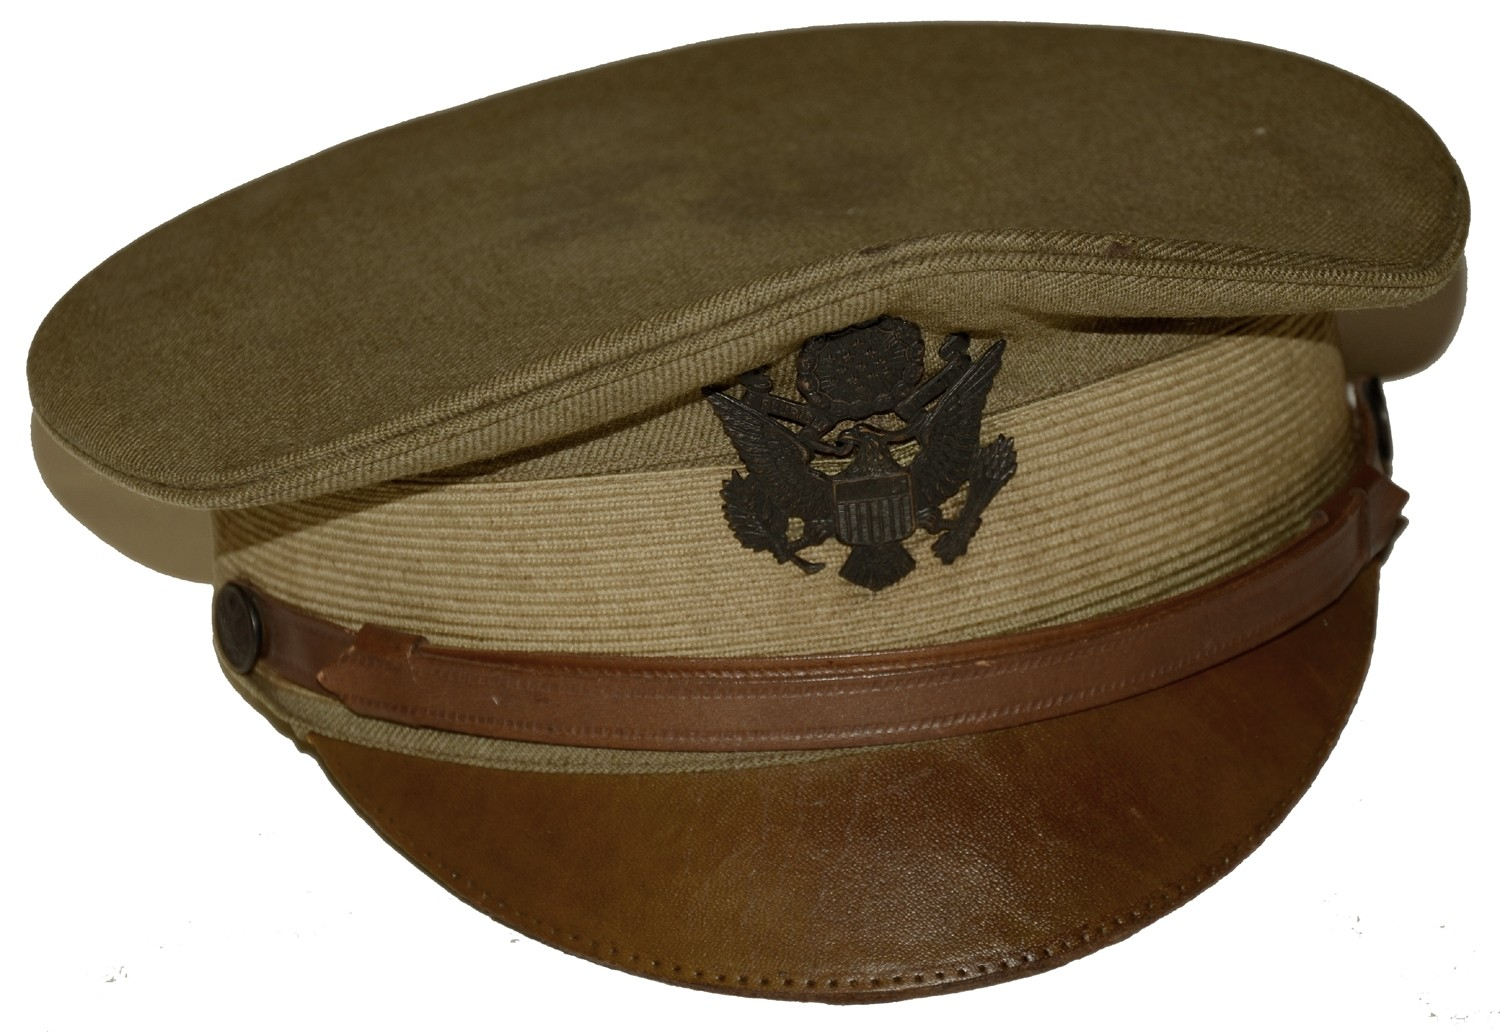 US WORLD WAR ONE MODEL 1910 OFFICER'S VISOR HAT